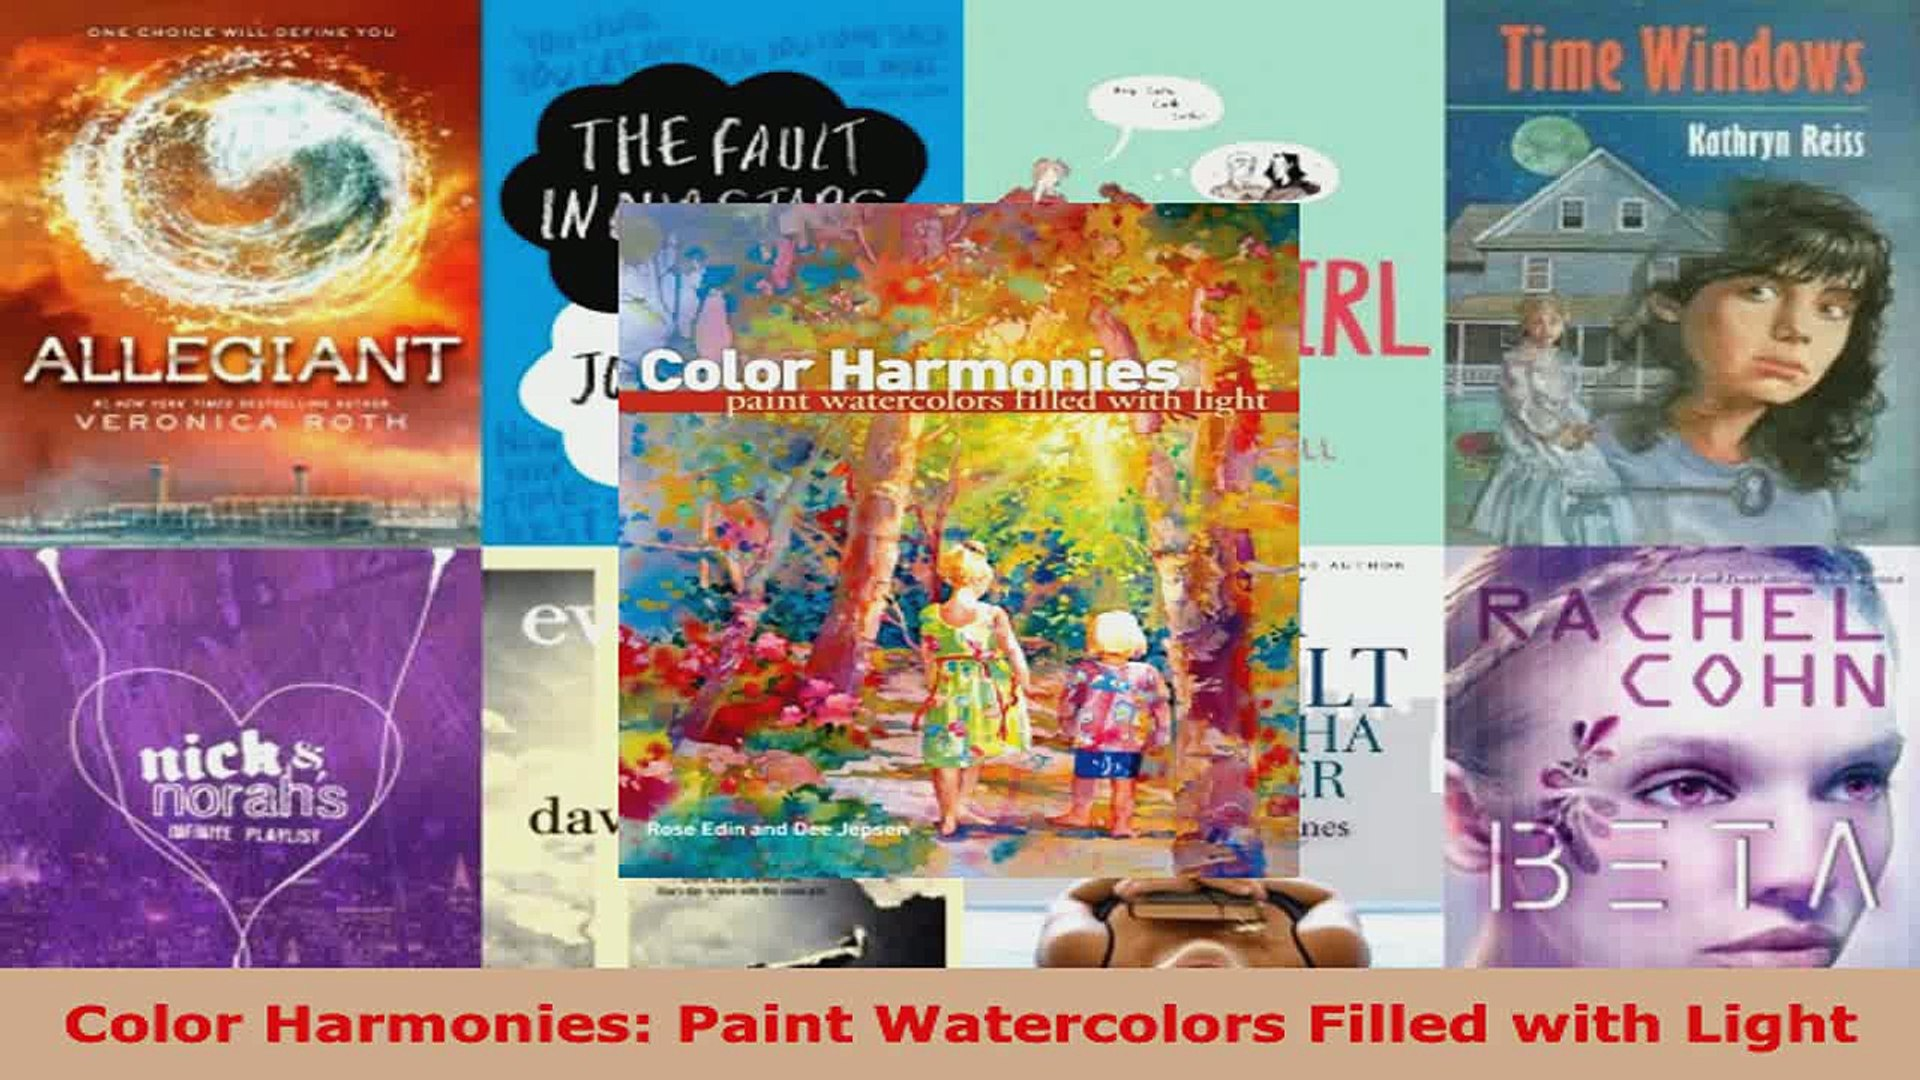 Paint Watercolors Filled with Light Color Harmonies